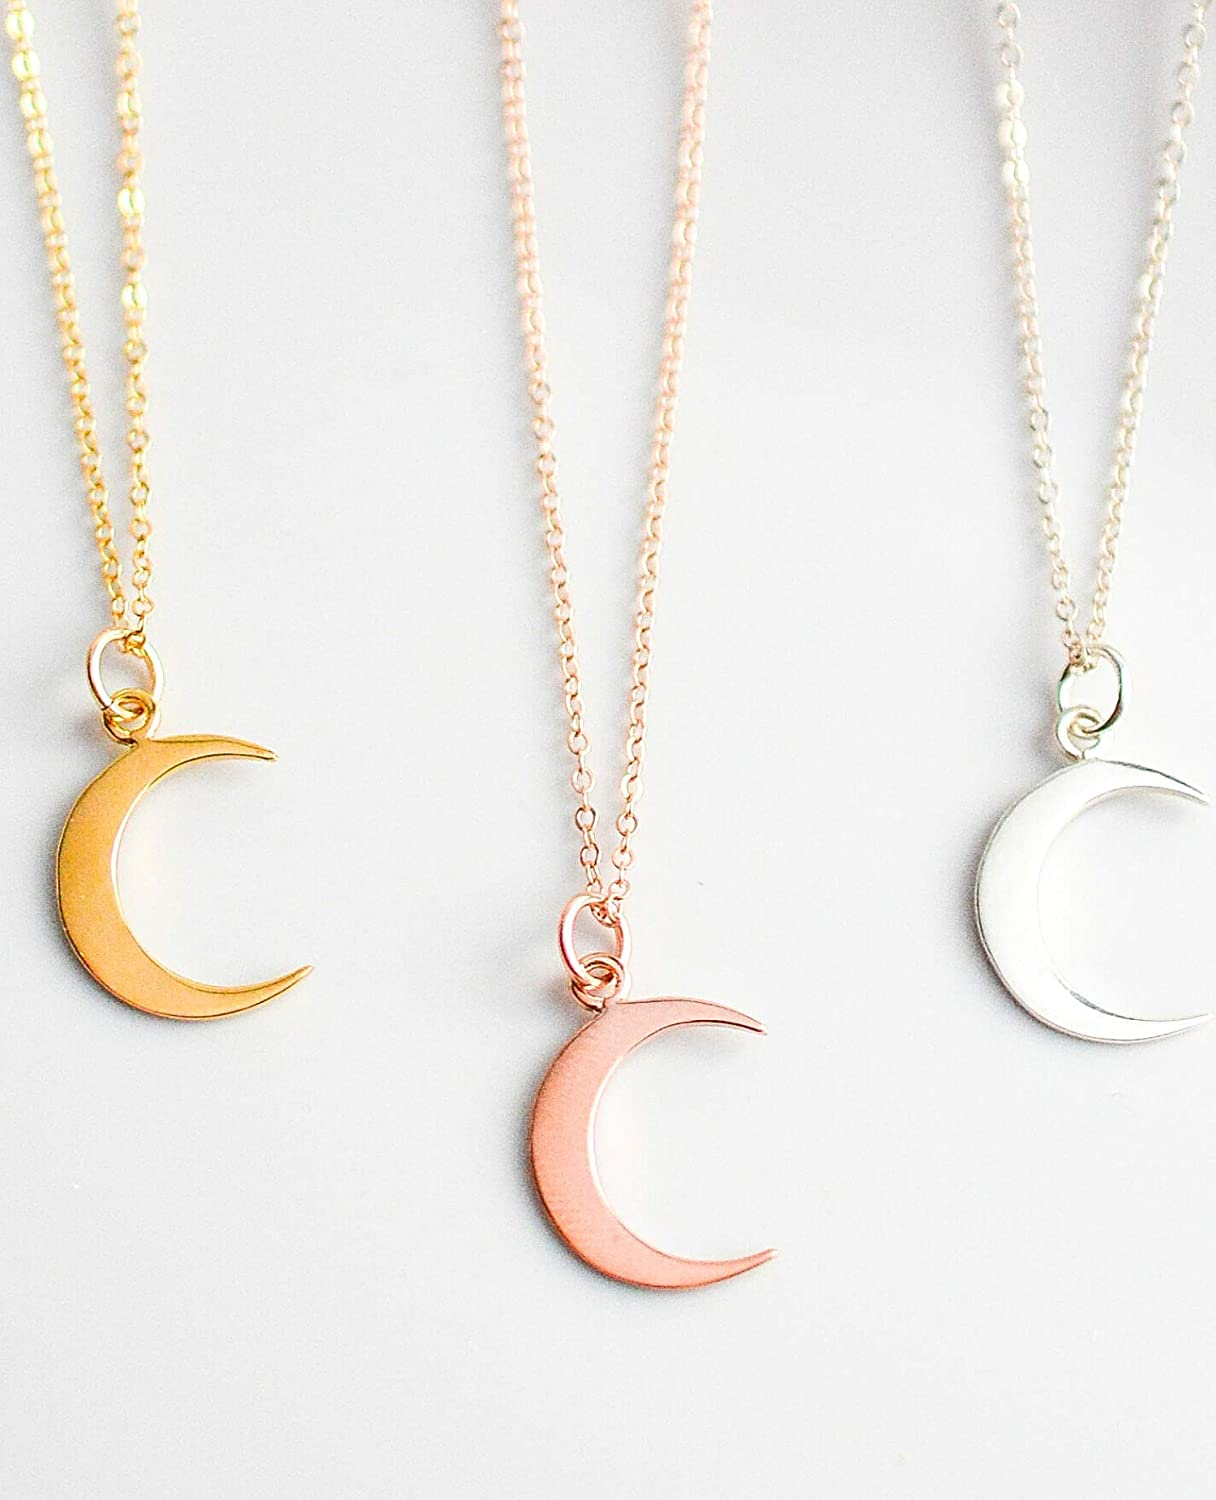 Crescent Moon Necklace New Orleans Mall Super special price in Sterling Silver or G Filled Rose Gold